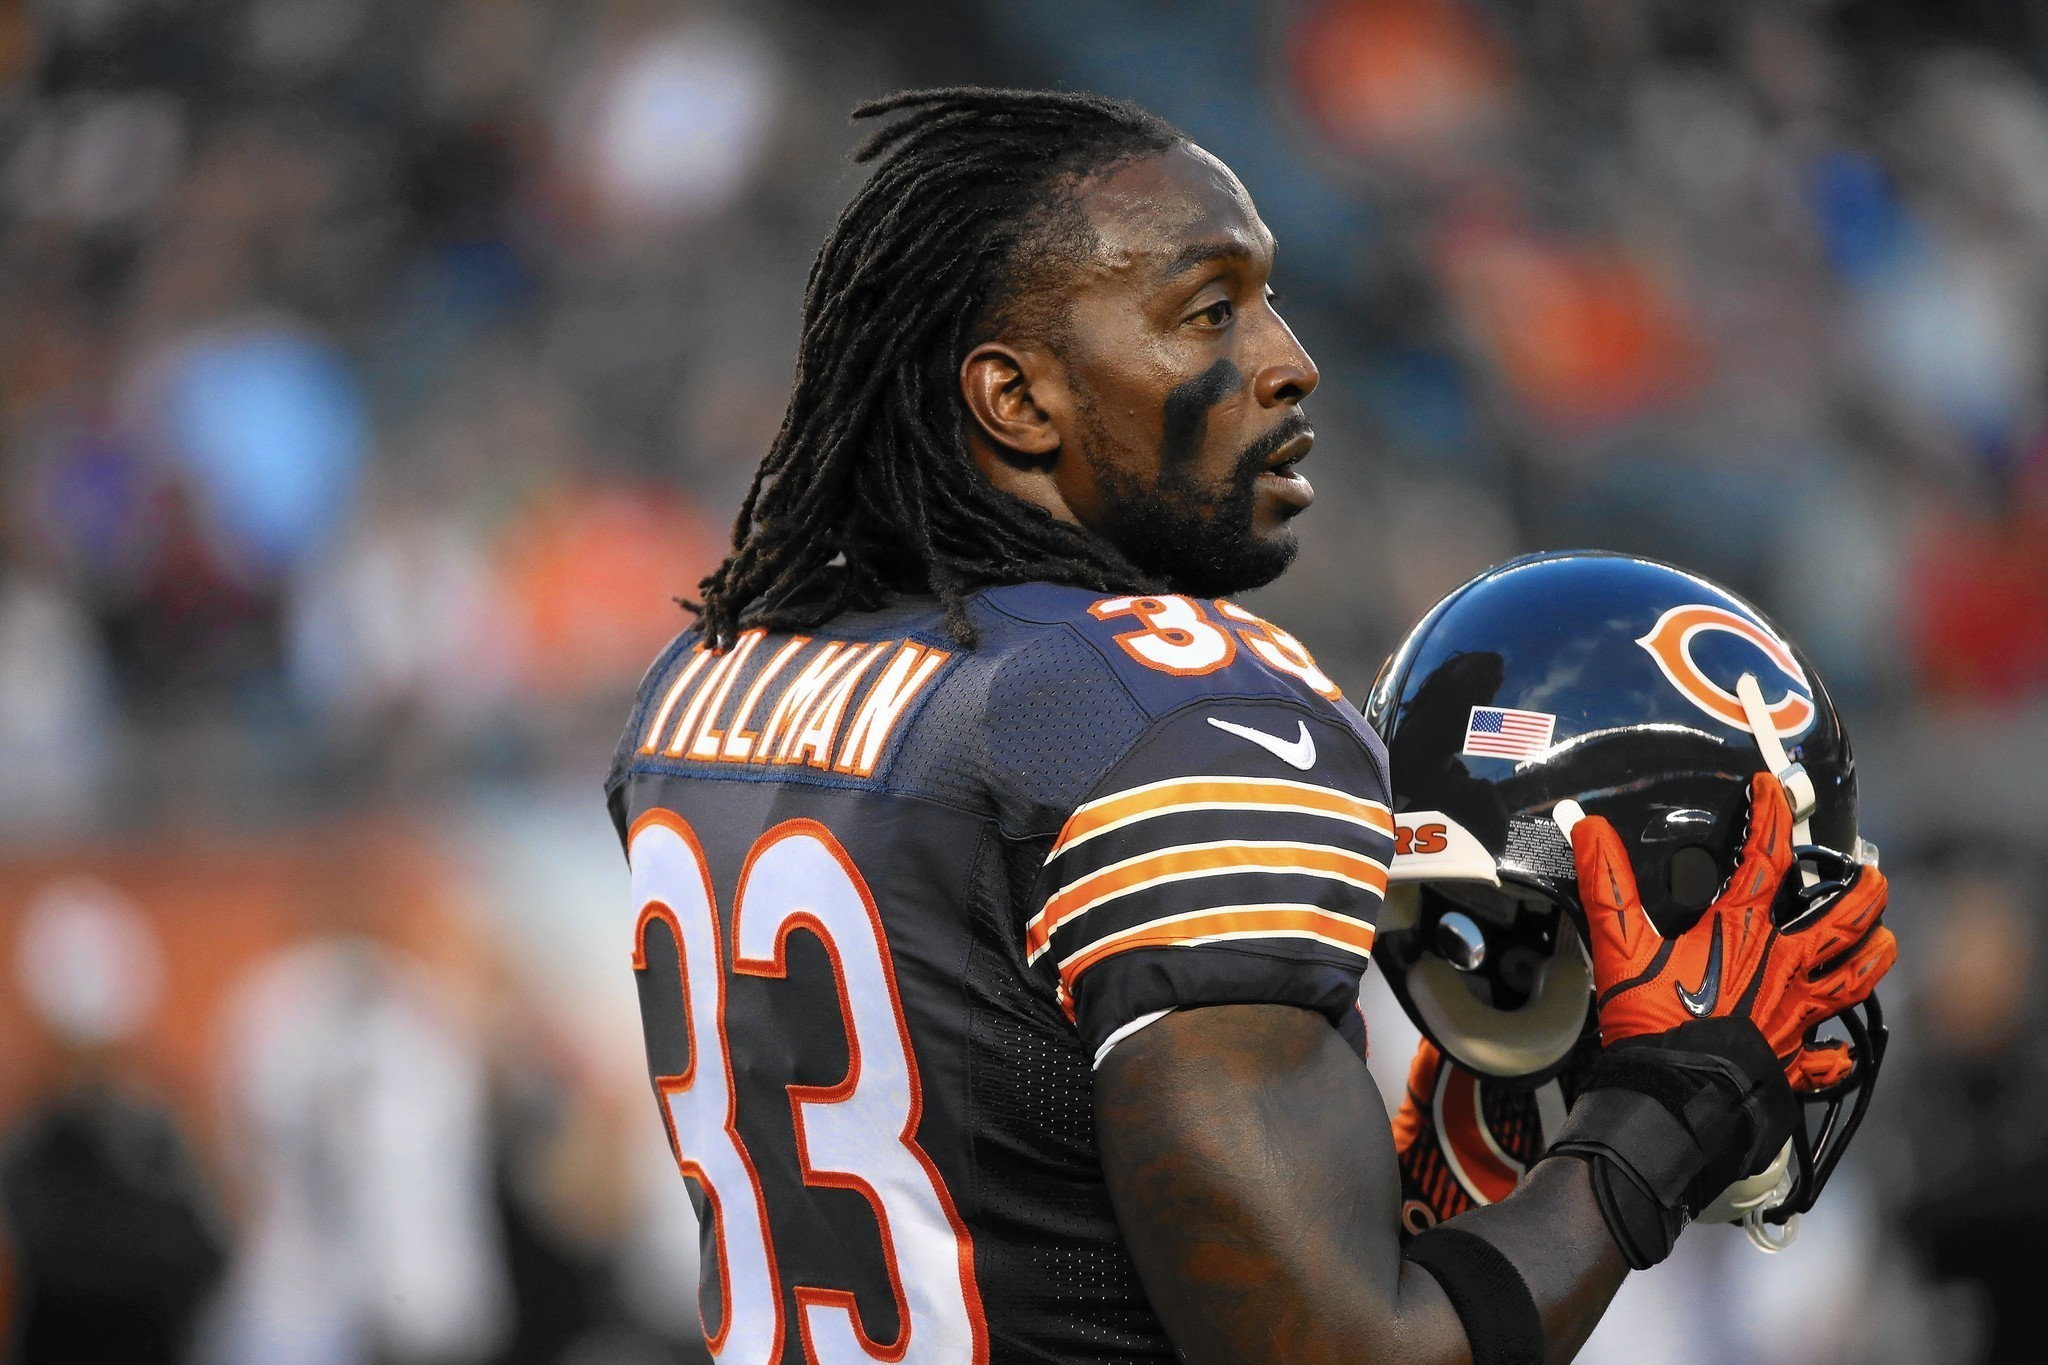 Ct-charles-tillman-on-amputees-packers-rivalry-20160520